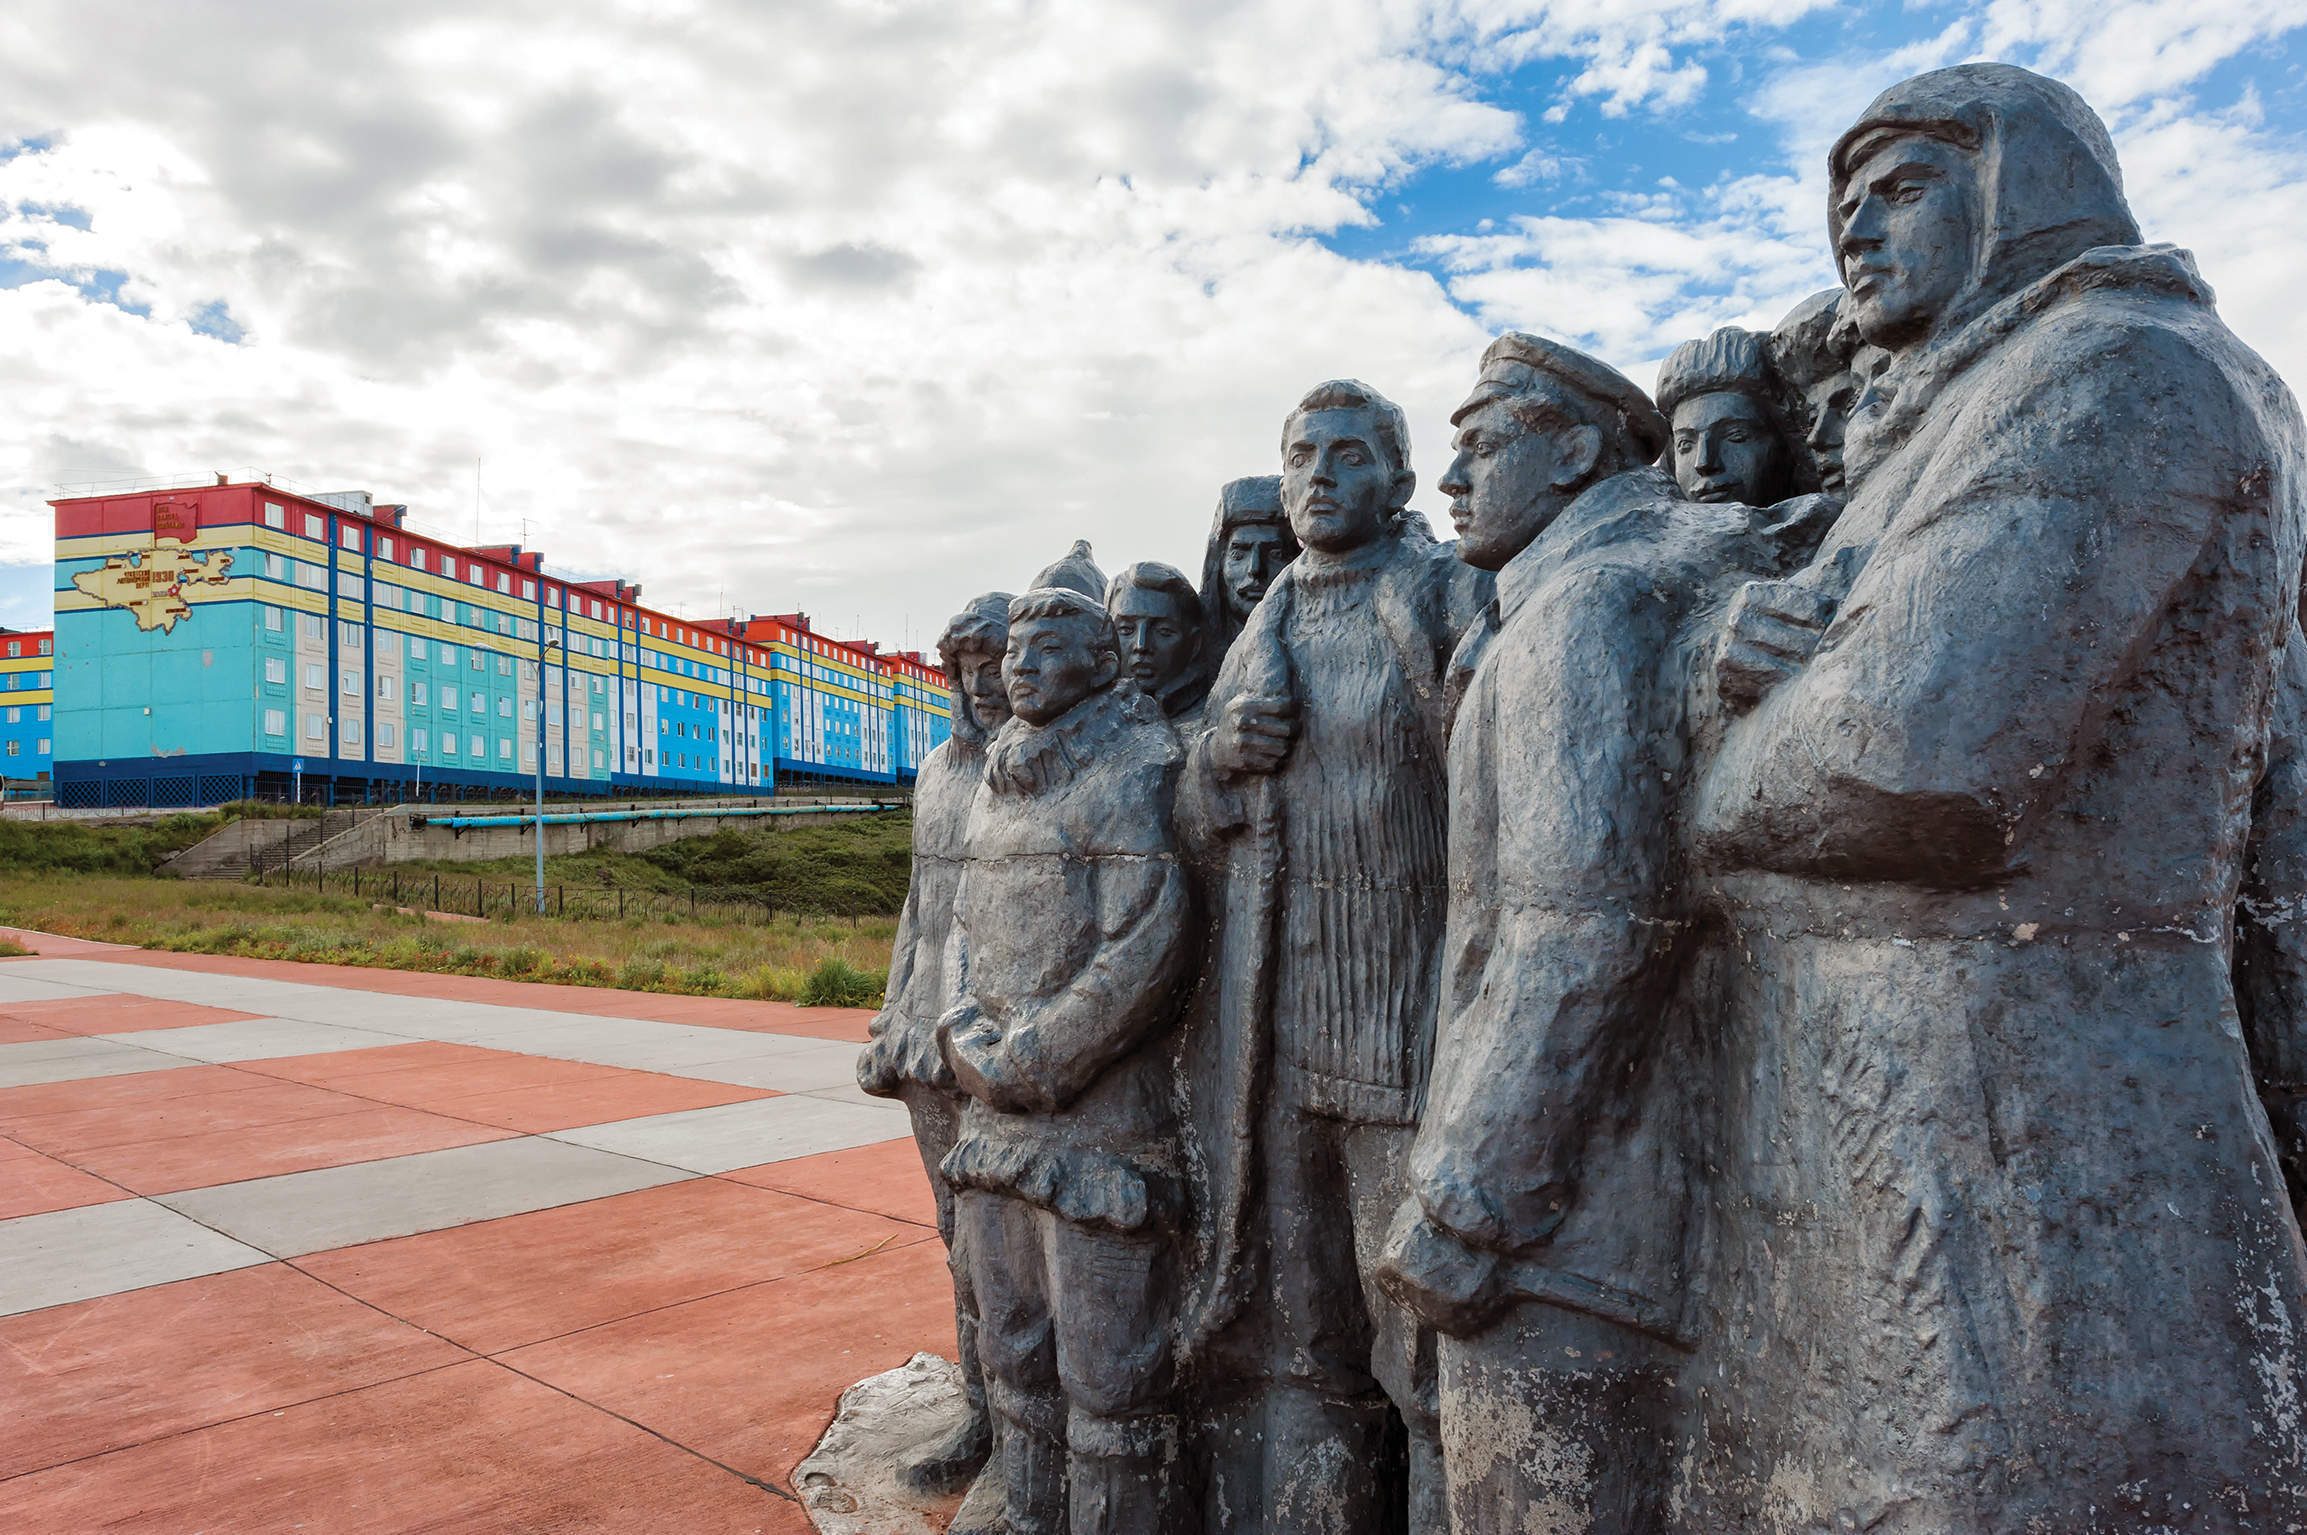 Landscapes of Communism counters myths, but omits some essential truths